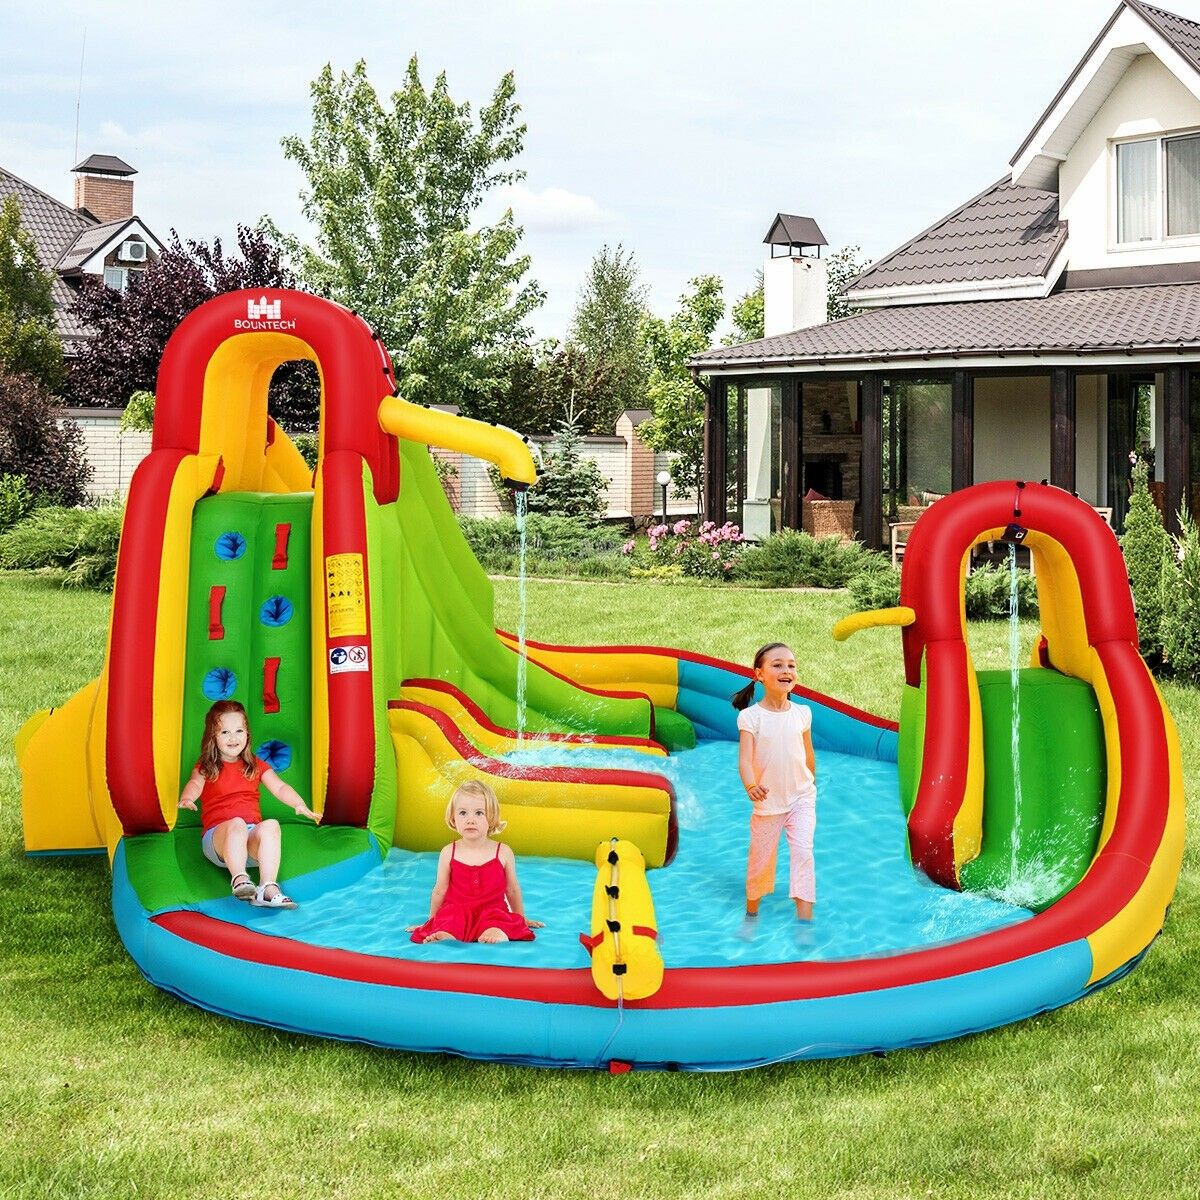 Kids Inflatable Water Slide Bounce House With Climbing Wall And Pool In 2021 Inflatable Water Slide Water Slide Bounce House Inflatable Water Park